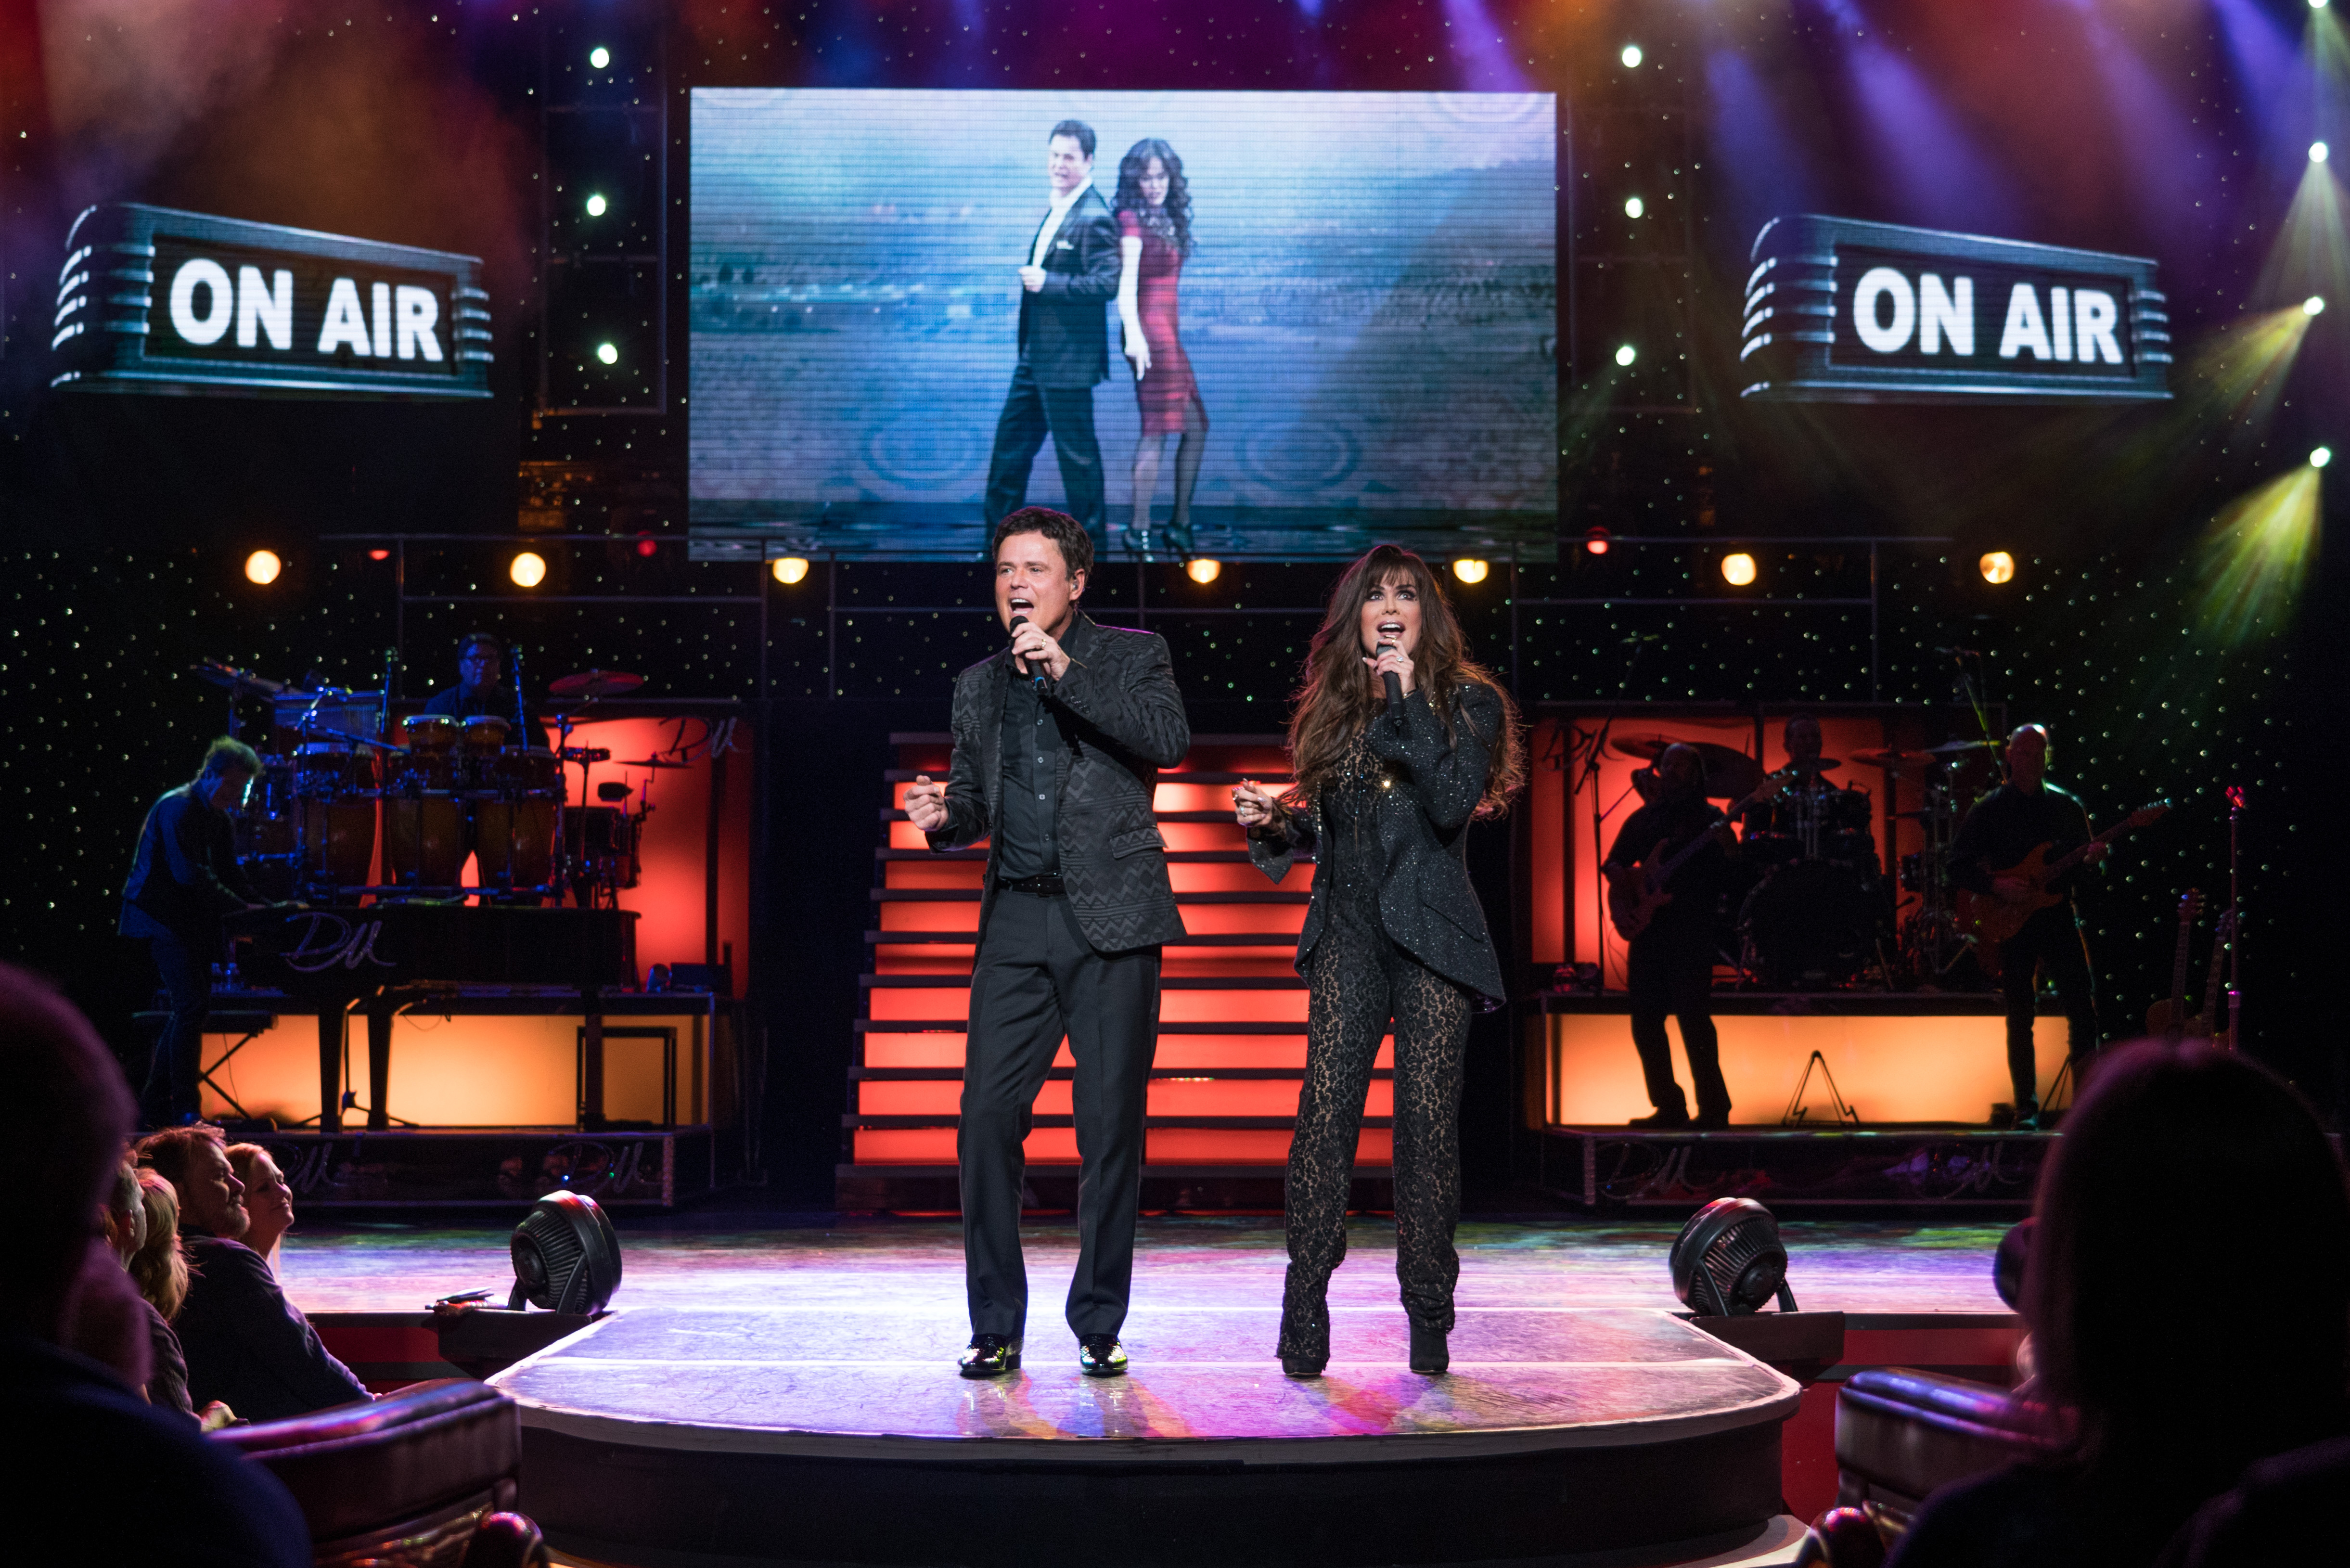 Donny and Marie Osmond perform at their long-running show at the Flamingo Hotel in Las Vegas.